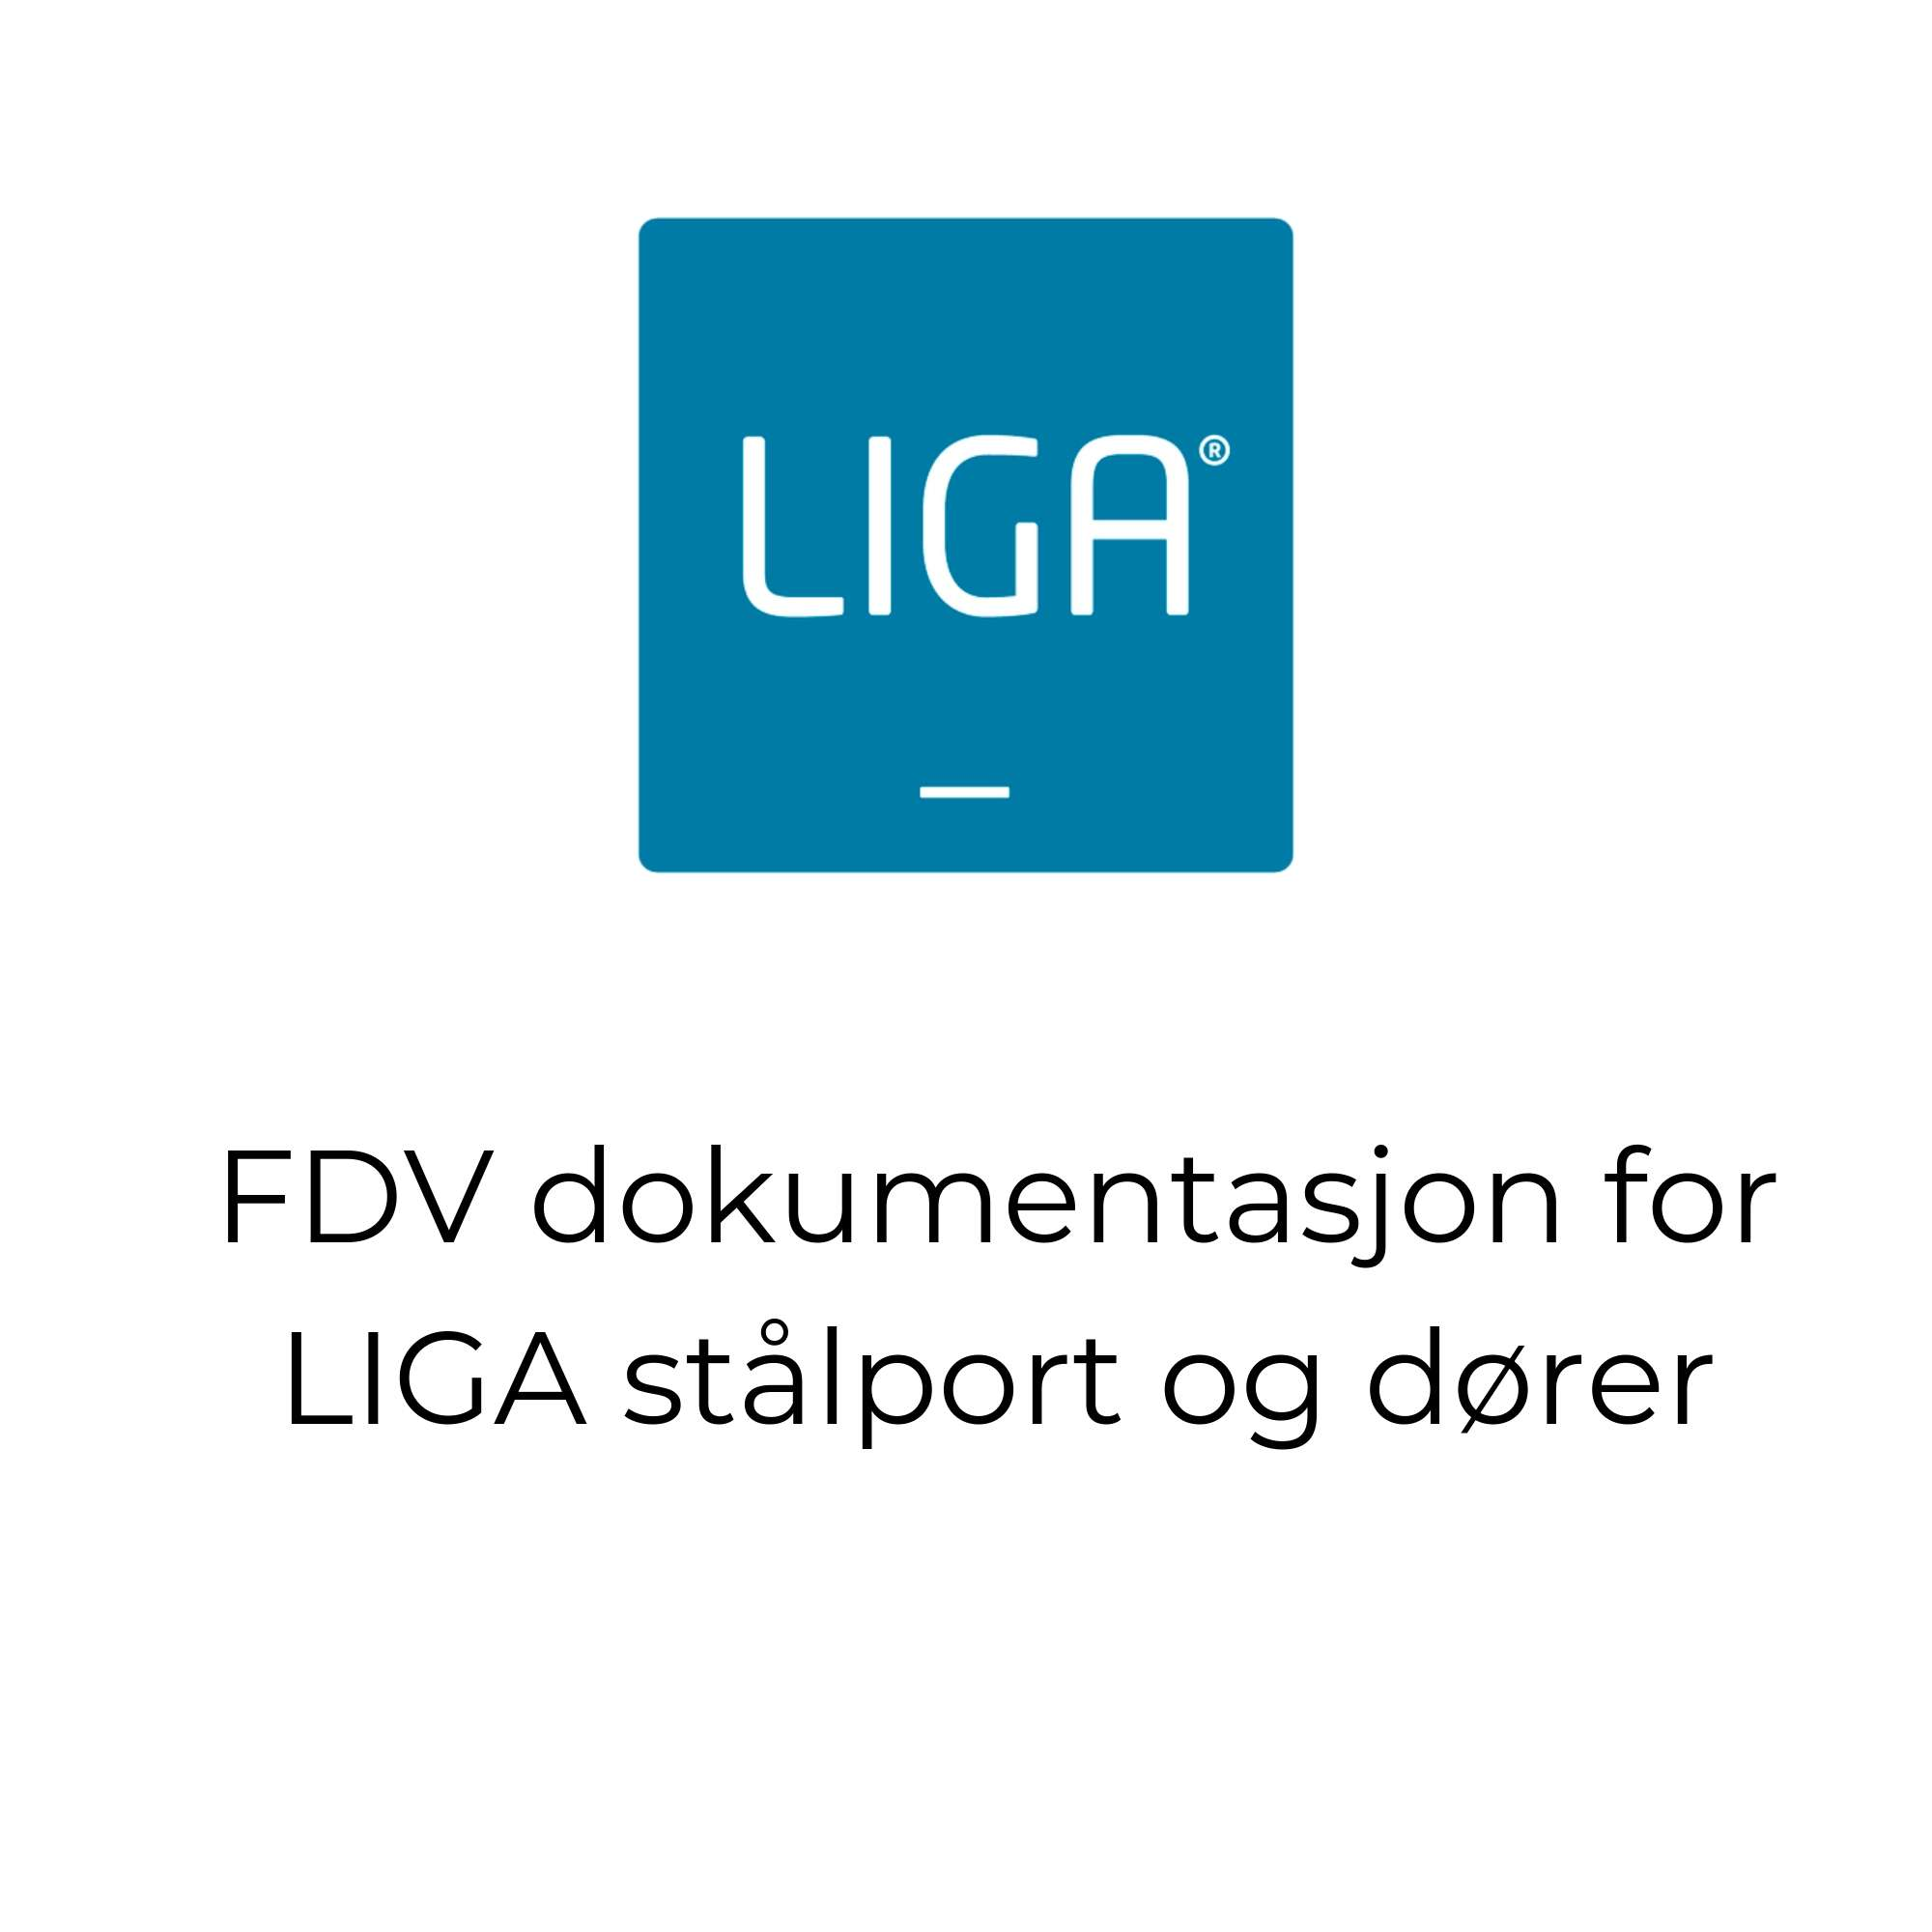 FDV dokumentasjon for LIGA stålport og dører